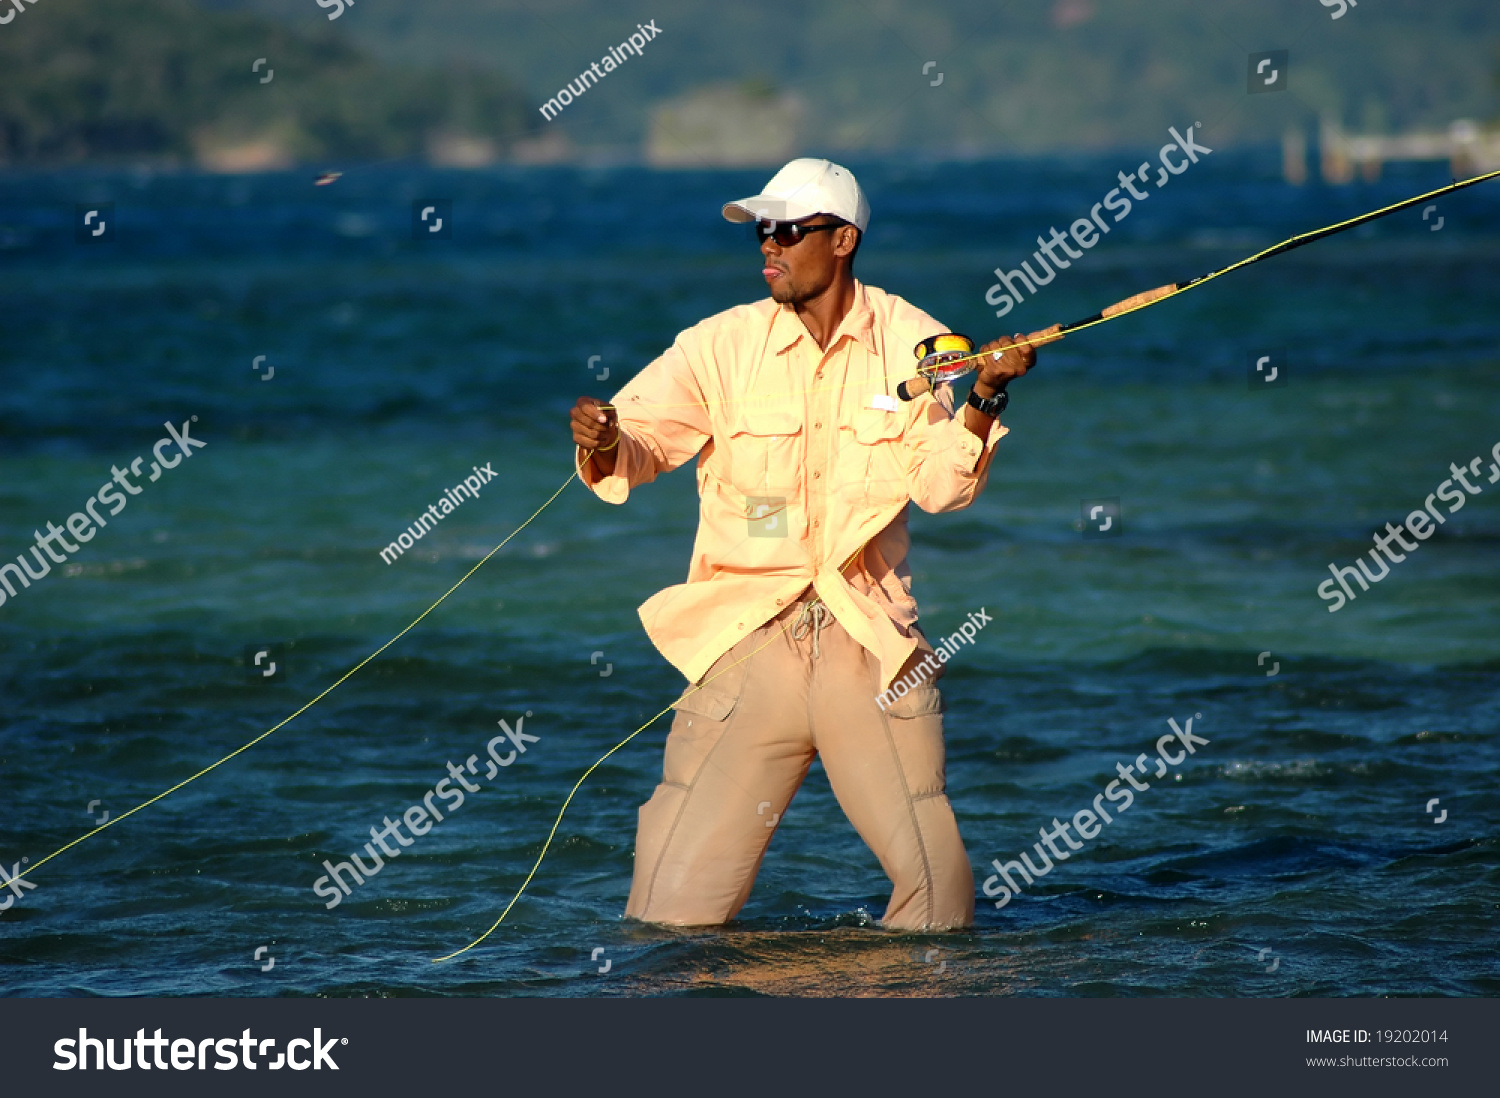 Fishing guide honduras shows concentration while stock for Fly fishing shows